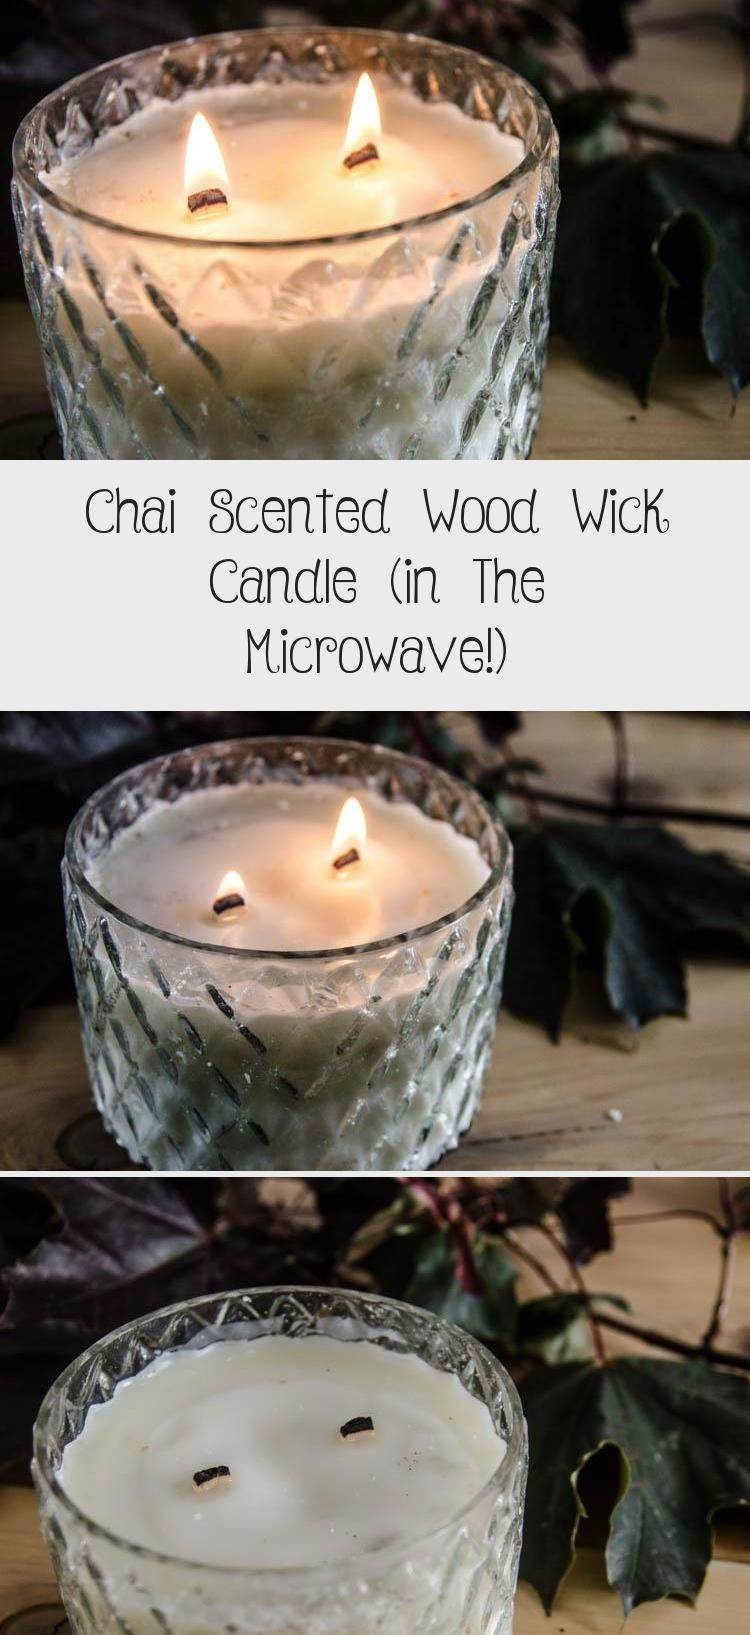 Chai scented wood wick candle in the microwave diy 2020